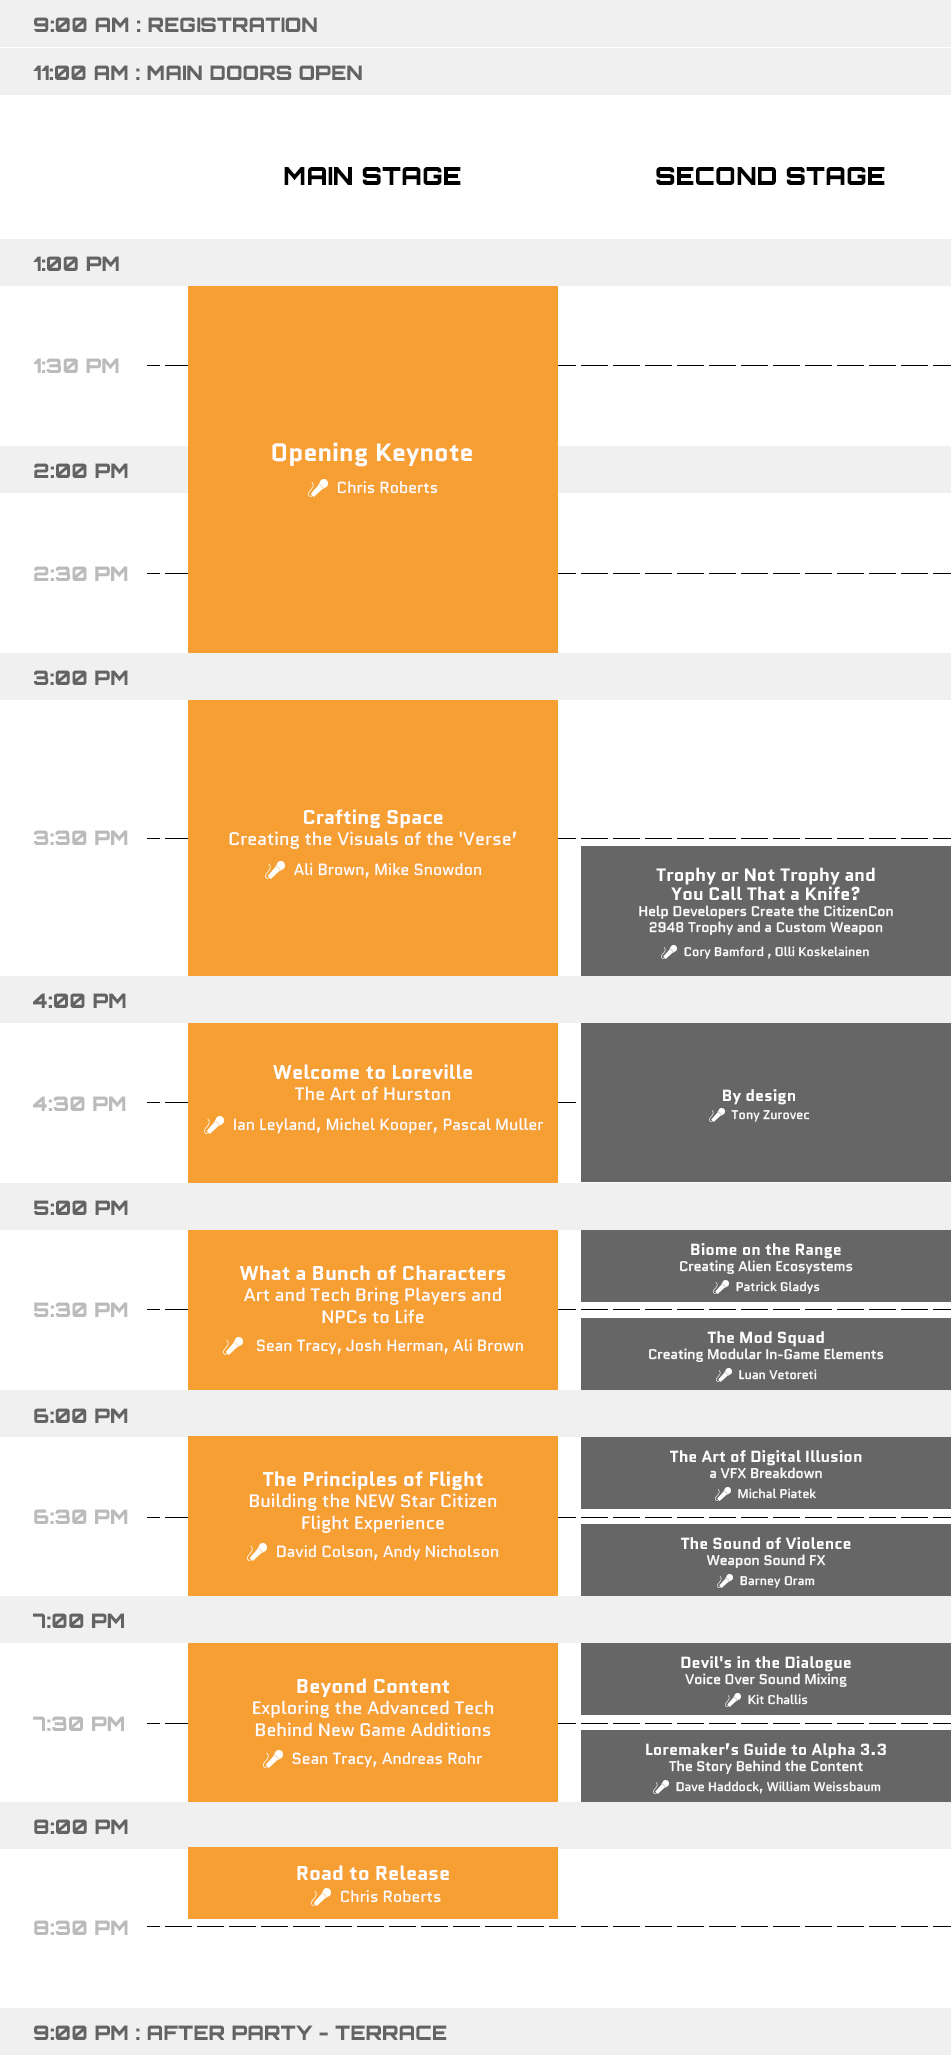 Citizencon_2948_Schedule_Desktop_3.jpg